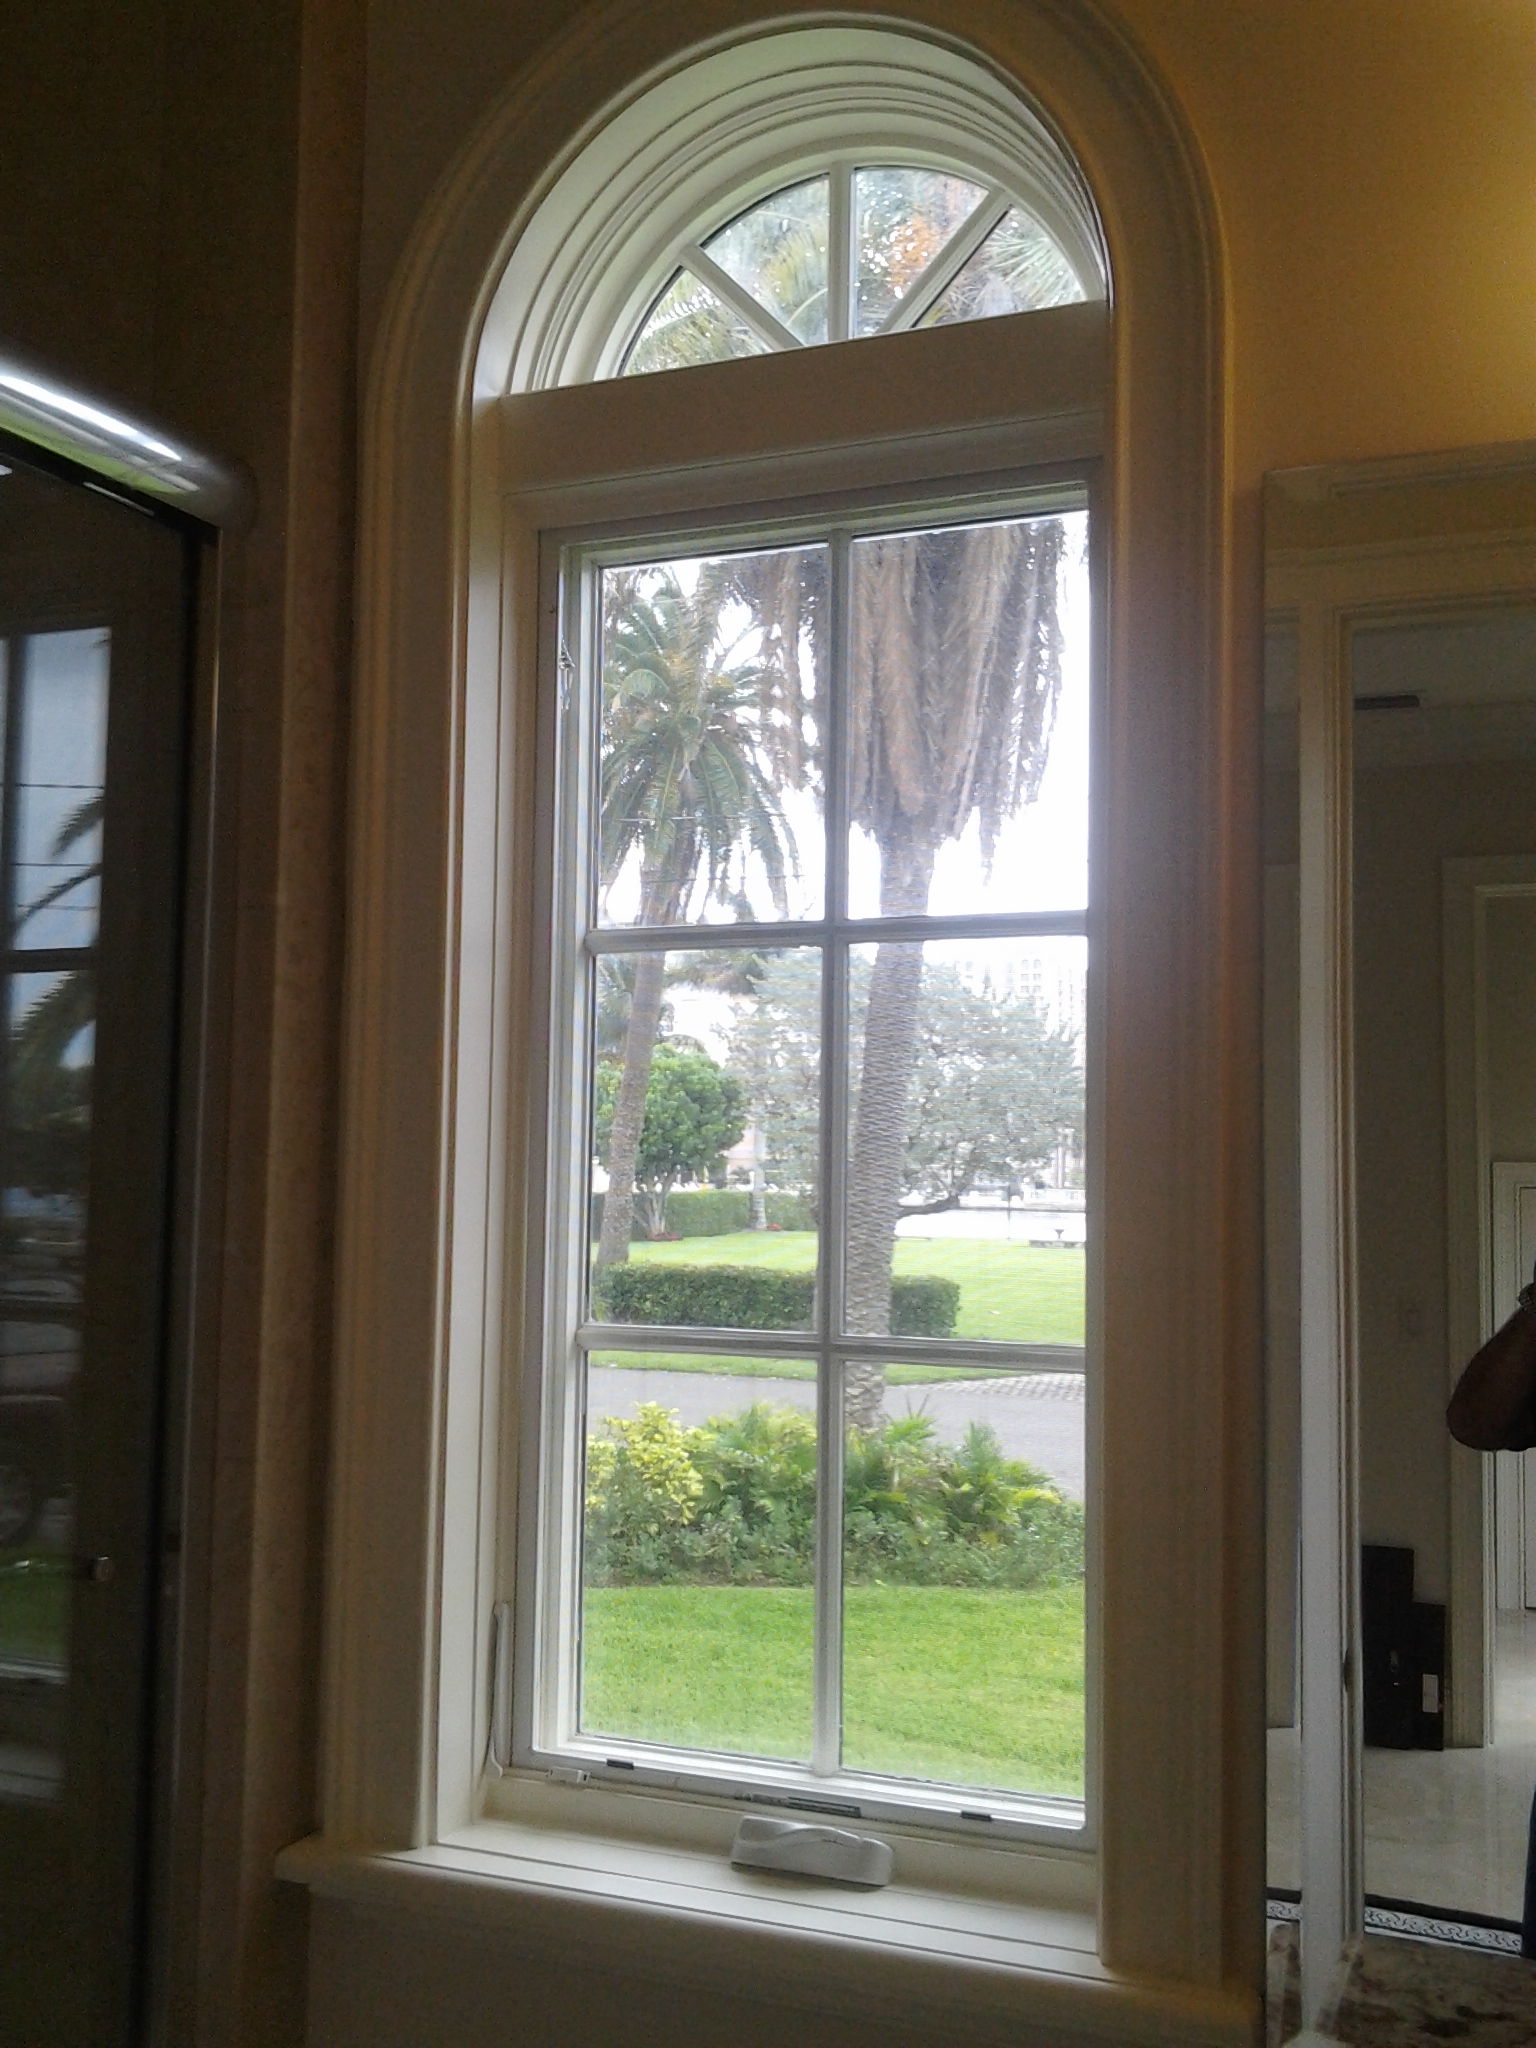 Miami windows repair and installation home window for Home window replacement